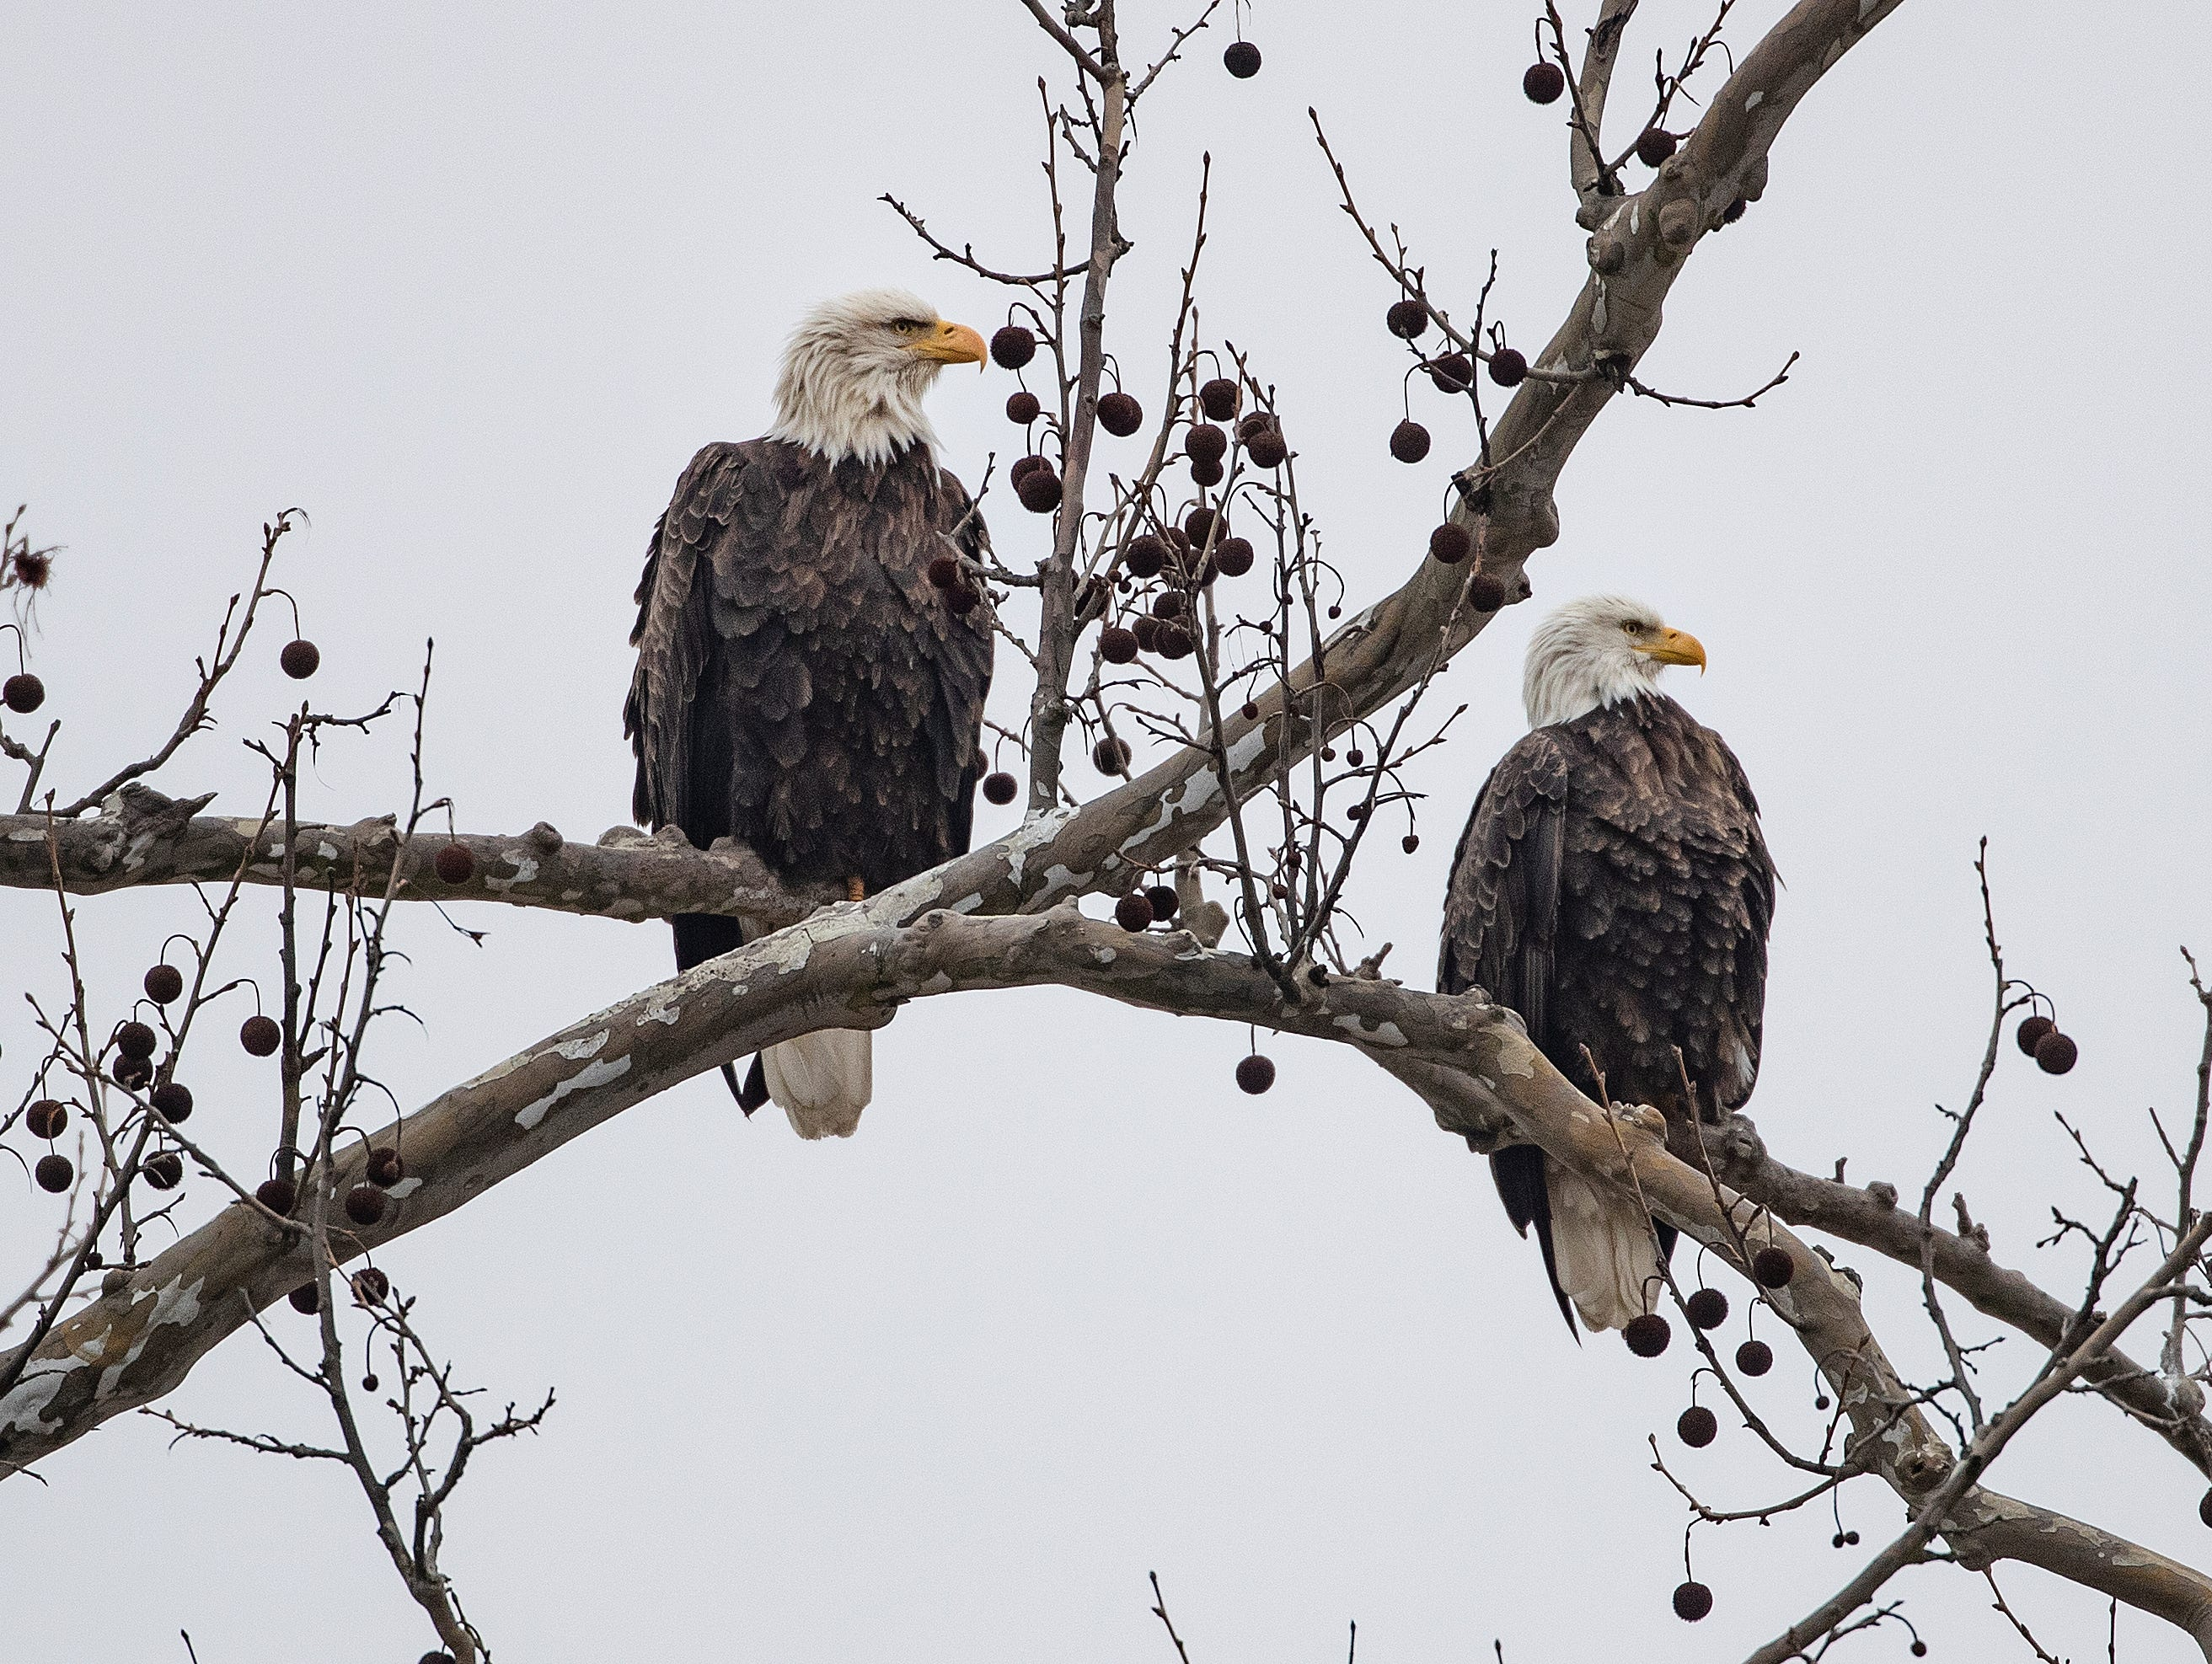 The Greenfield Eagles sit perched in a tree near their nest in a grove of trees near the intersection of Hickory Blvd and E New Road in Greenfield. The eagles' nest is on private property but can be viewed from the road. The neighbors and land owners ask that you do not park on the roads to view the eagles. It is best to park near a nearby Home Depot and walk east three blocks to view the eagles.